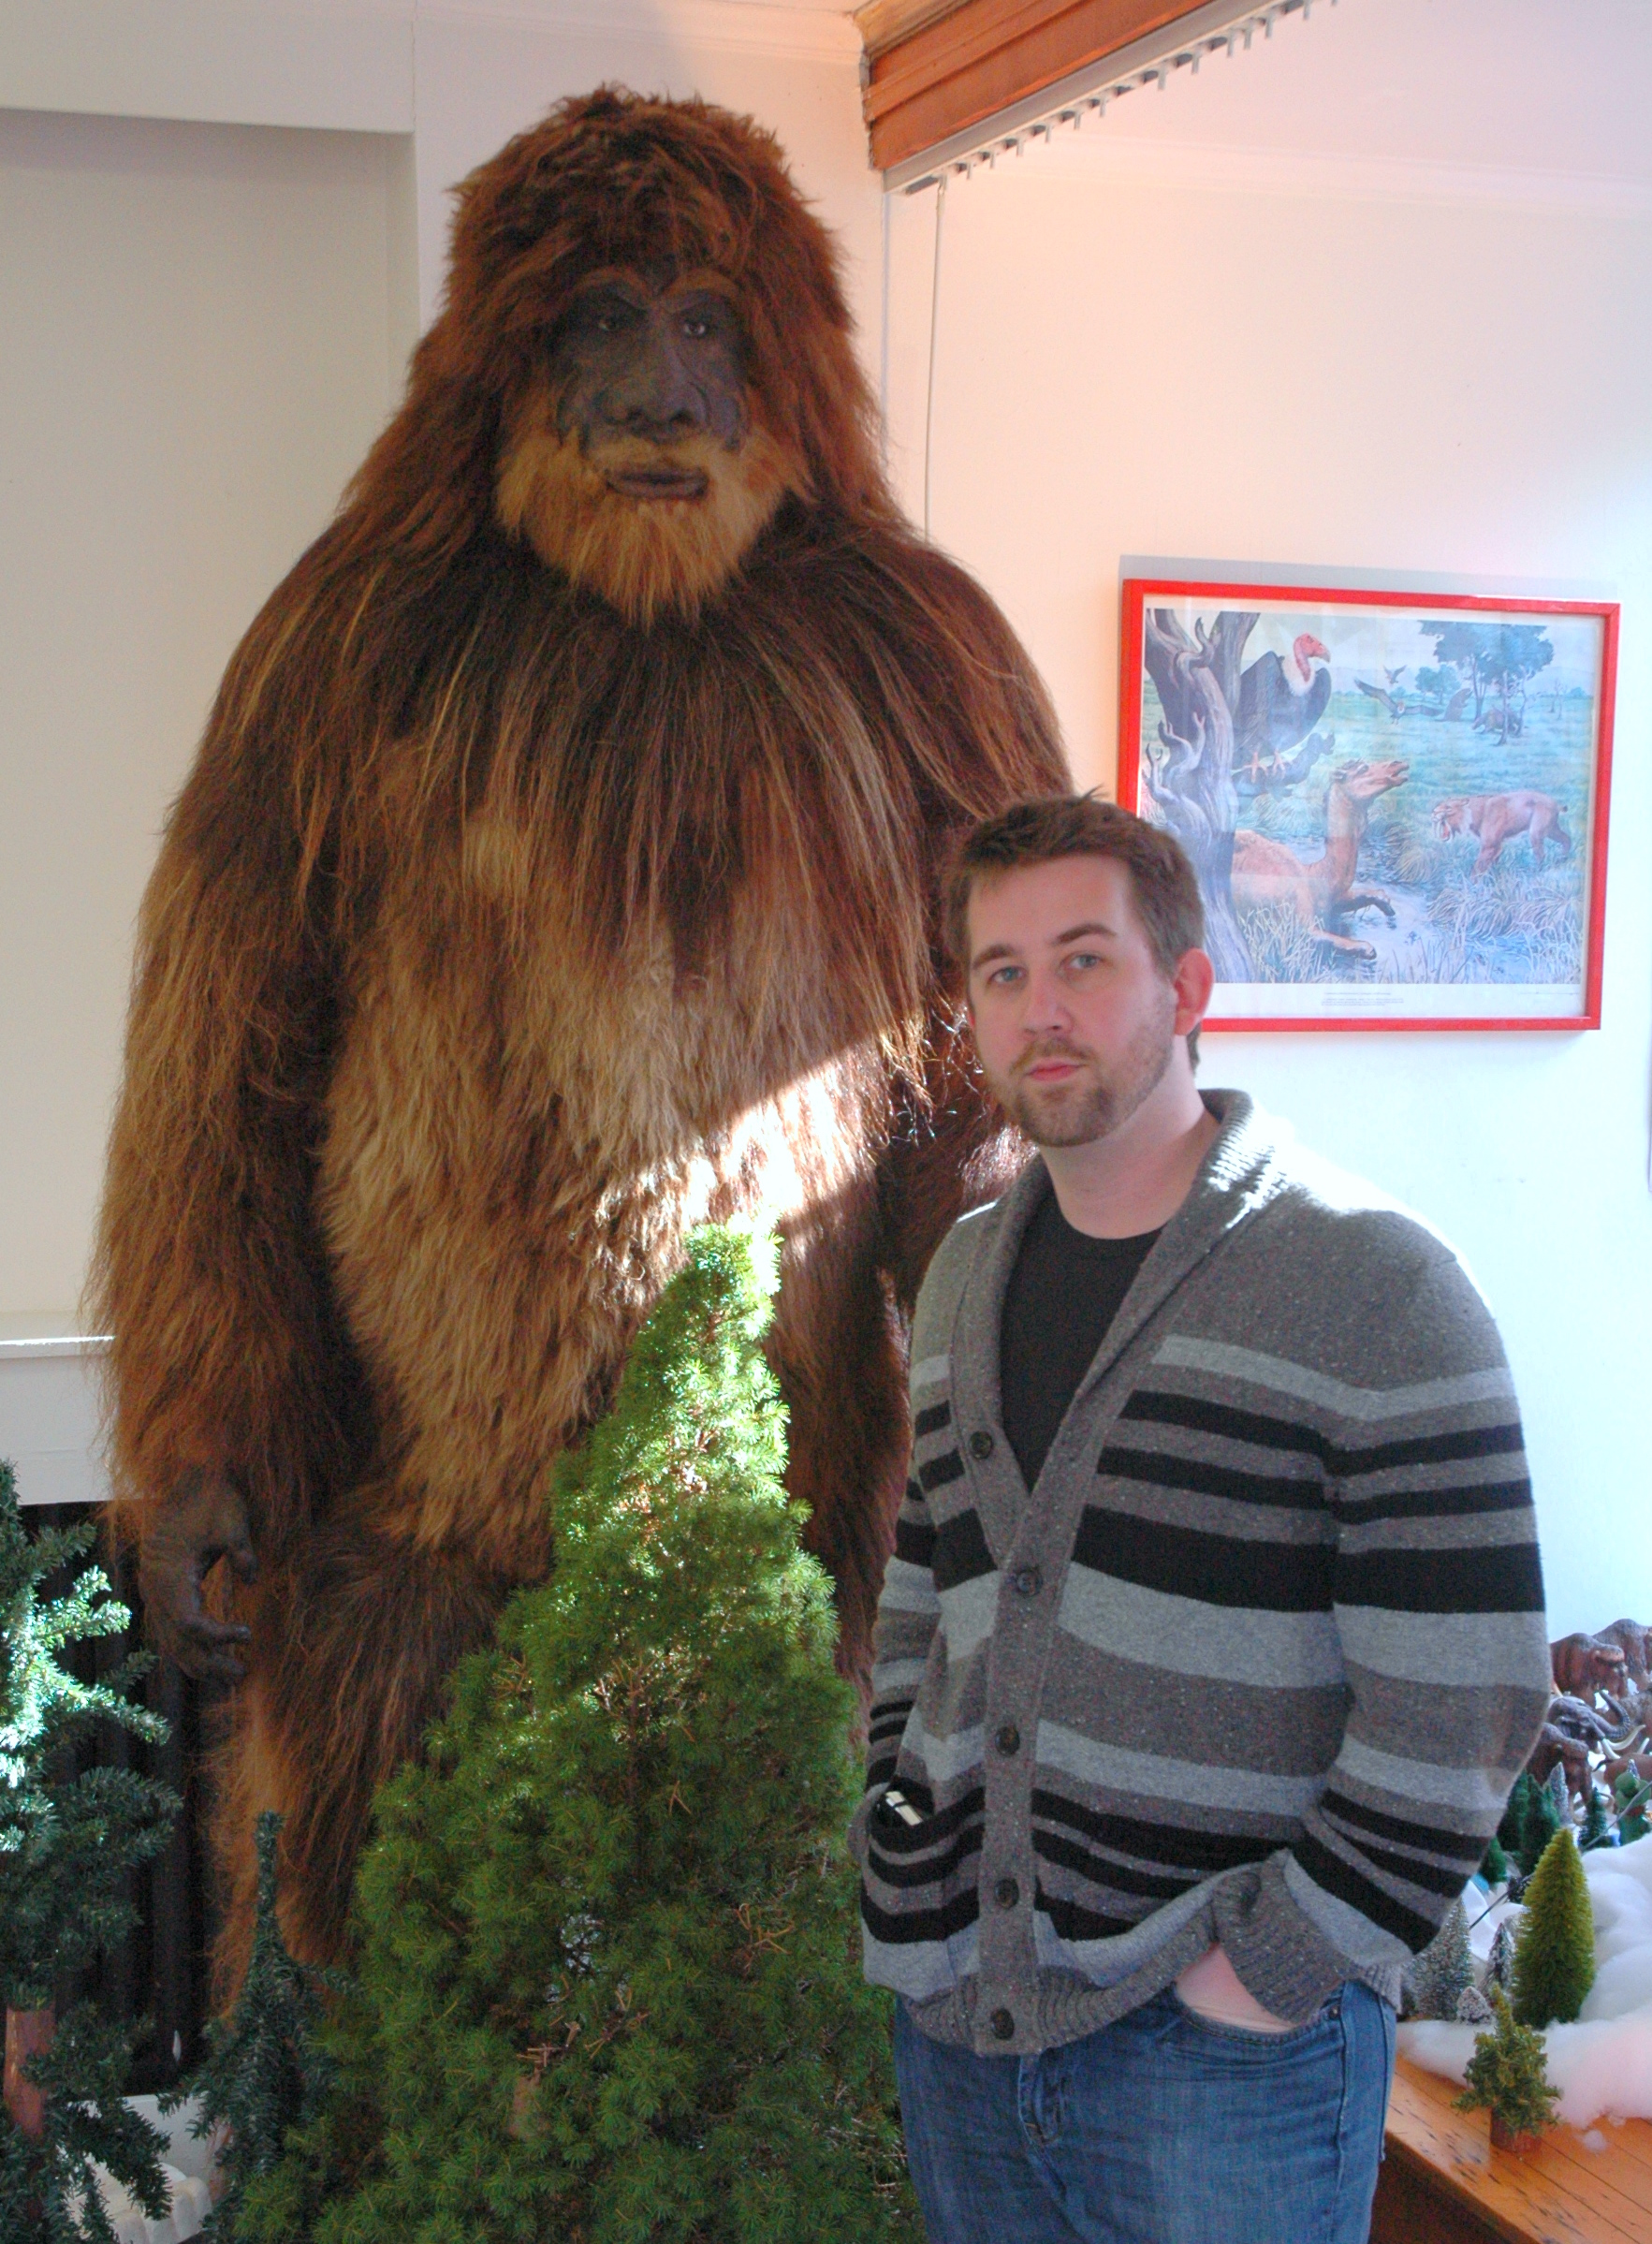 Bigfoot at the International Cryptozoology Museum - Atlas Obscura